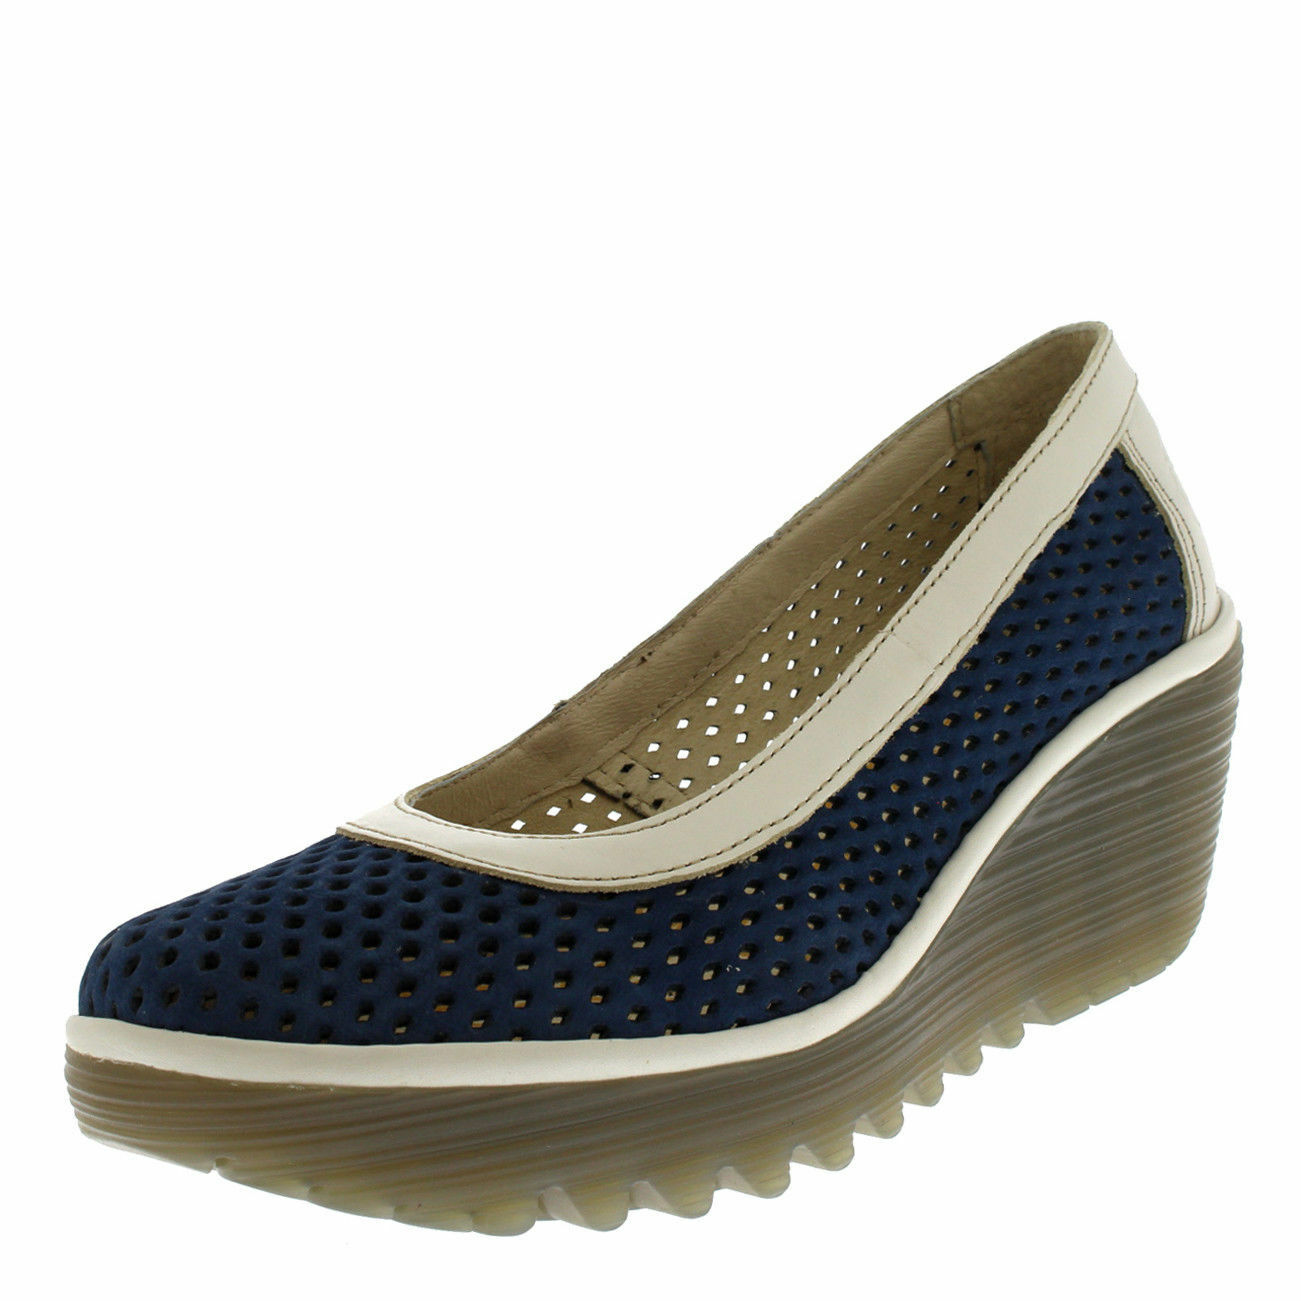 FLY LONDON UK YOBE842FLY LEATHER PLATFORM WEDGE Schuhe WEDGES UK LONDON 4 EUR 37 1b606f